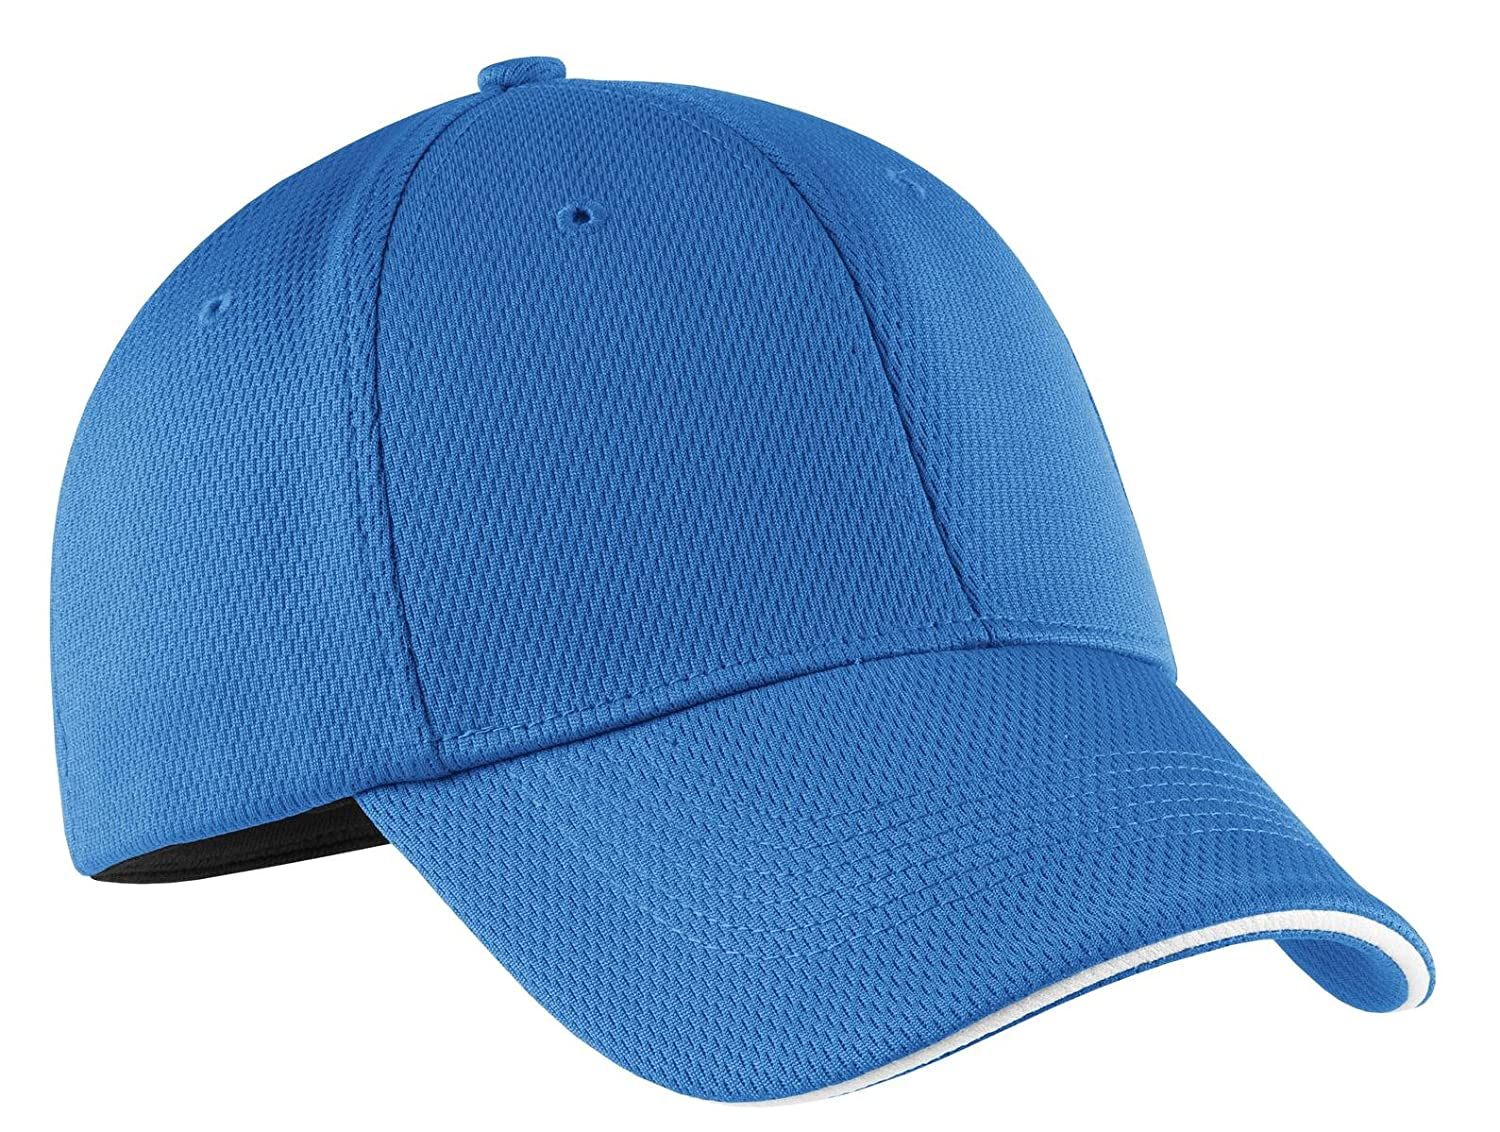 90eba8a9e Nike Golf Dri-Fit Mesh Swoosh Flex Sandwich Cap Pacific Blue 333115 L/XL